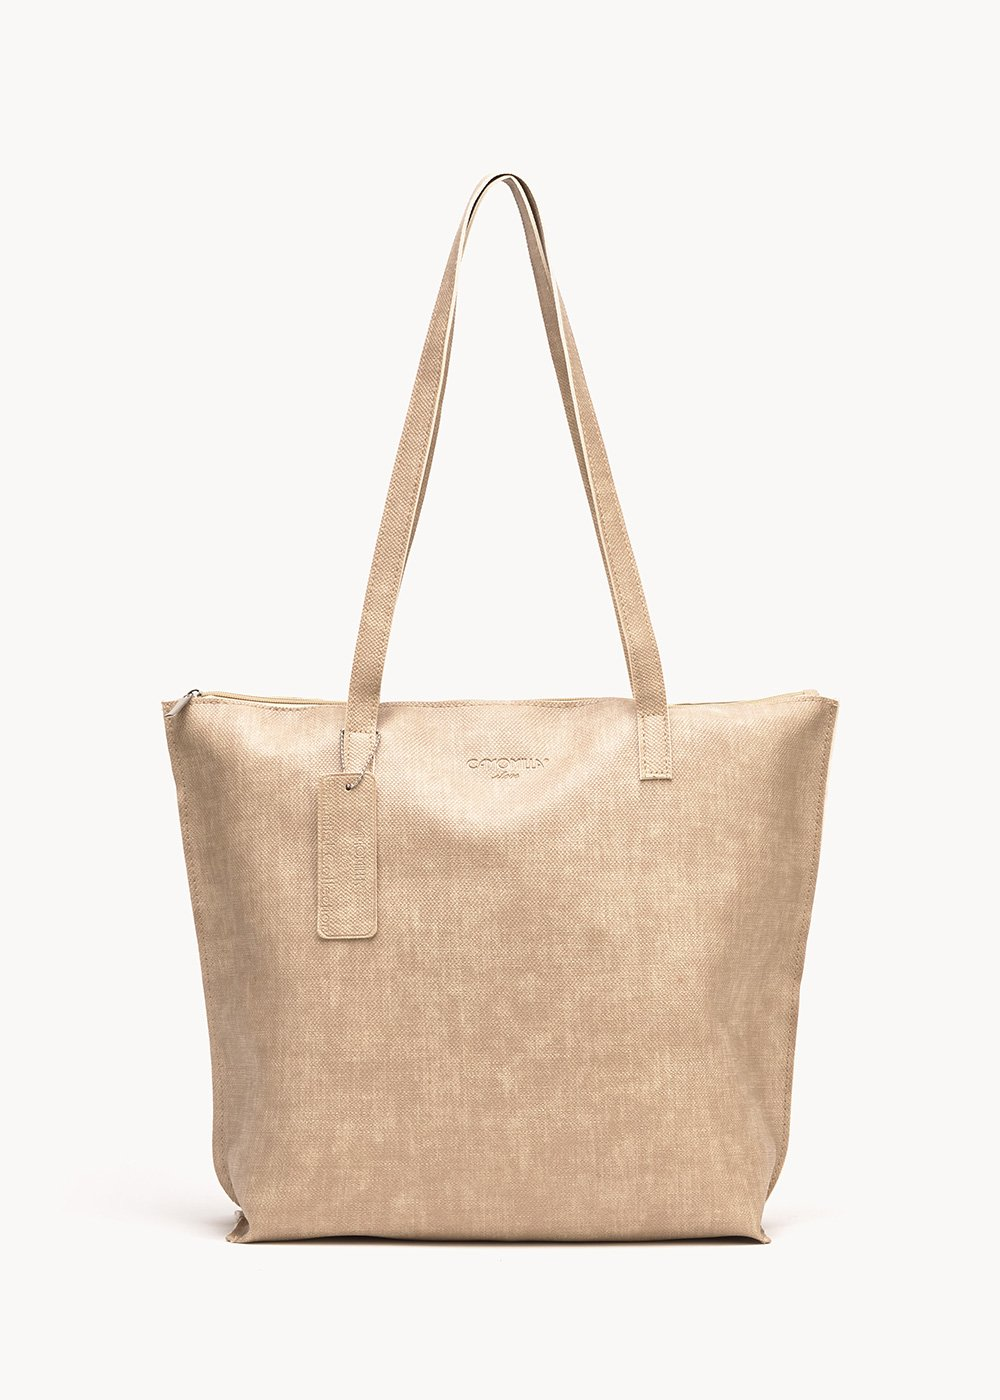 Shopping bag Beatrice in eco pelle - Zenzero - Donna